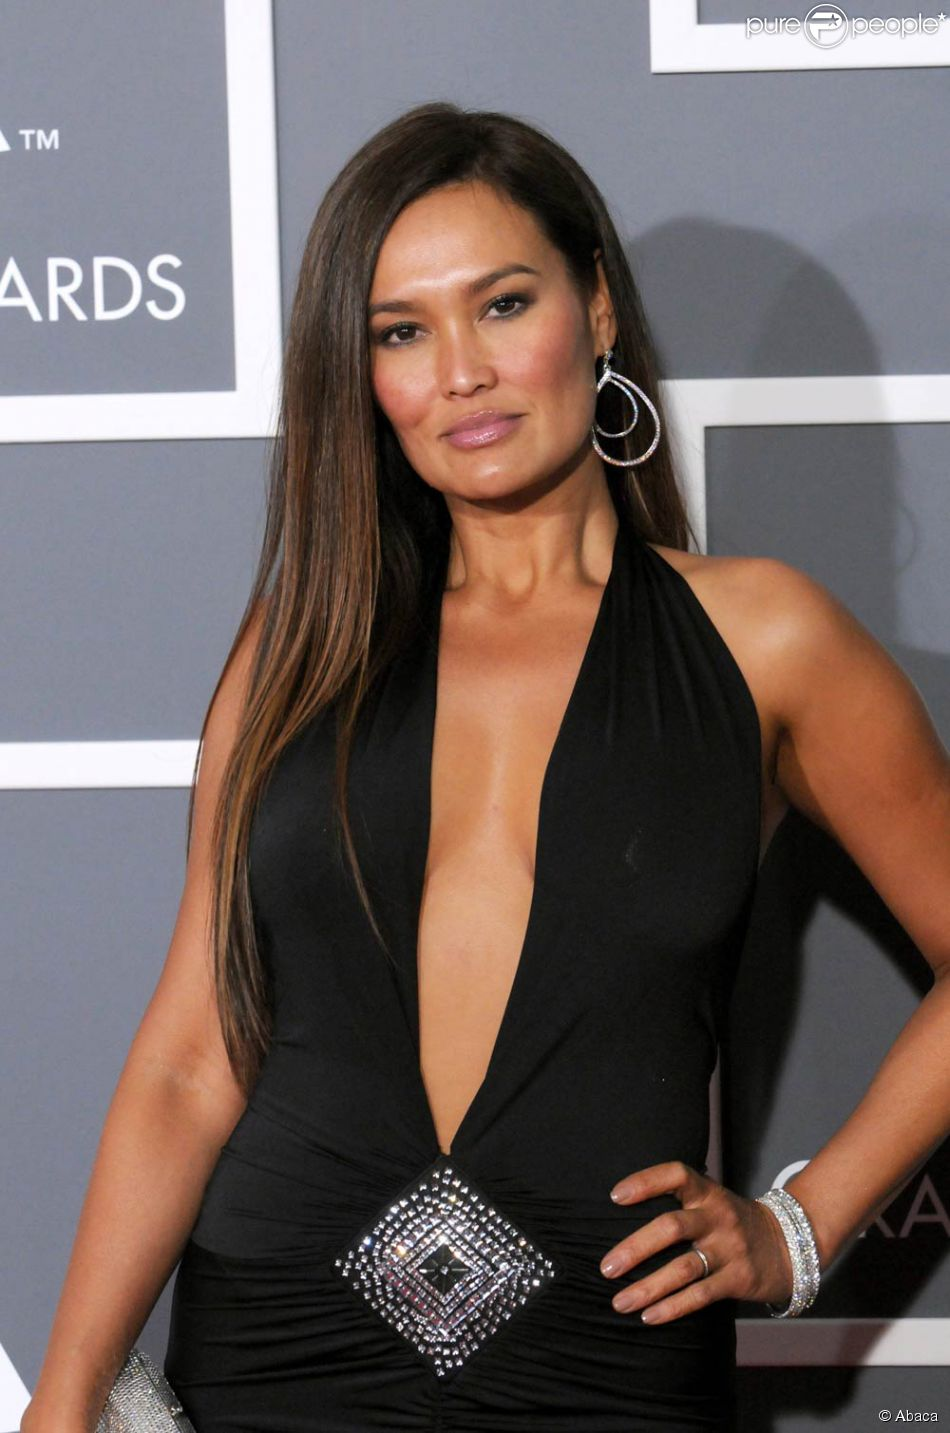 Photos Tia Carrere nude (17 foto and video), Topless, Cleavage, Feet, lingerie 2019